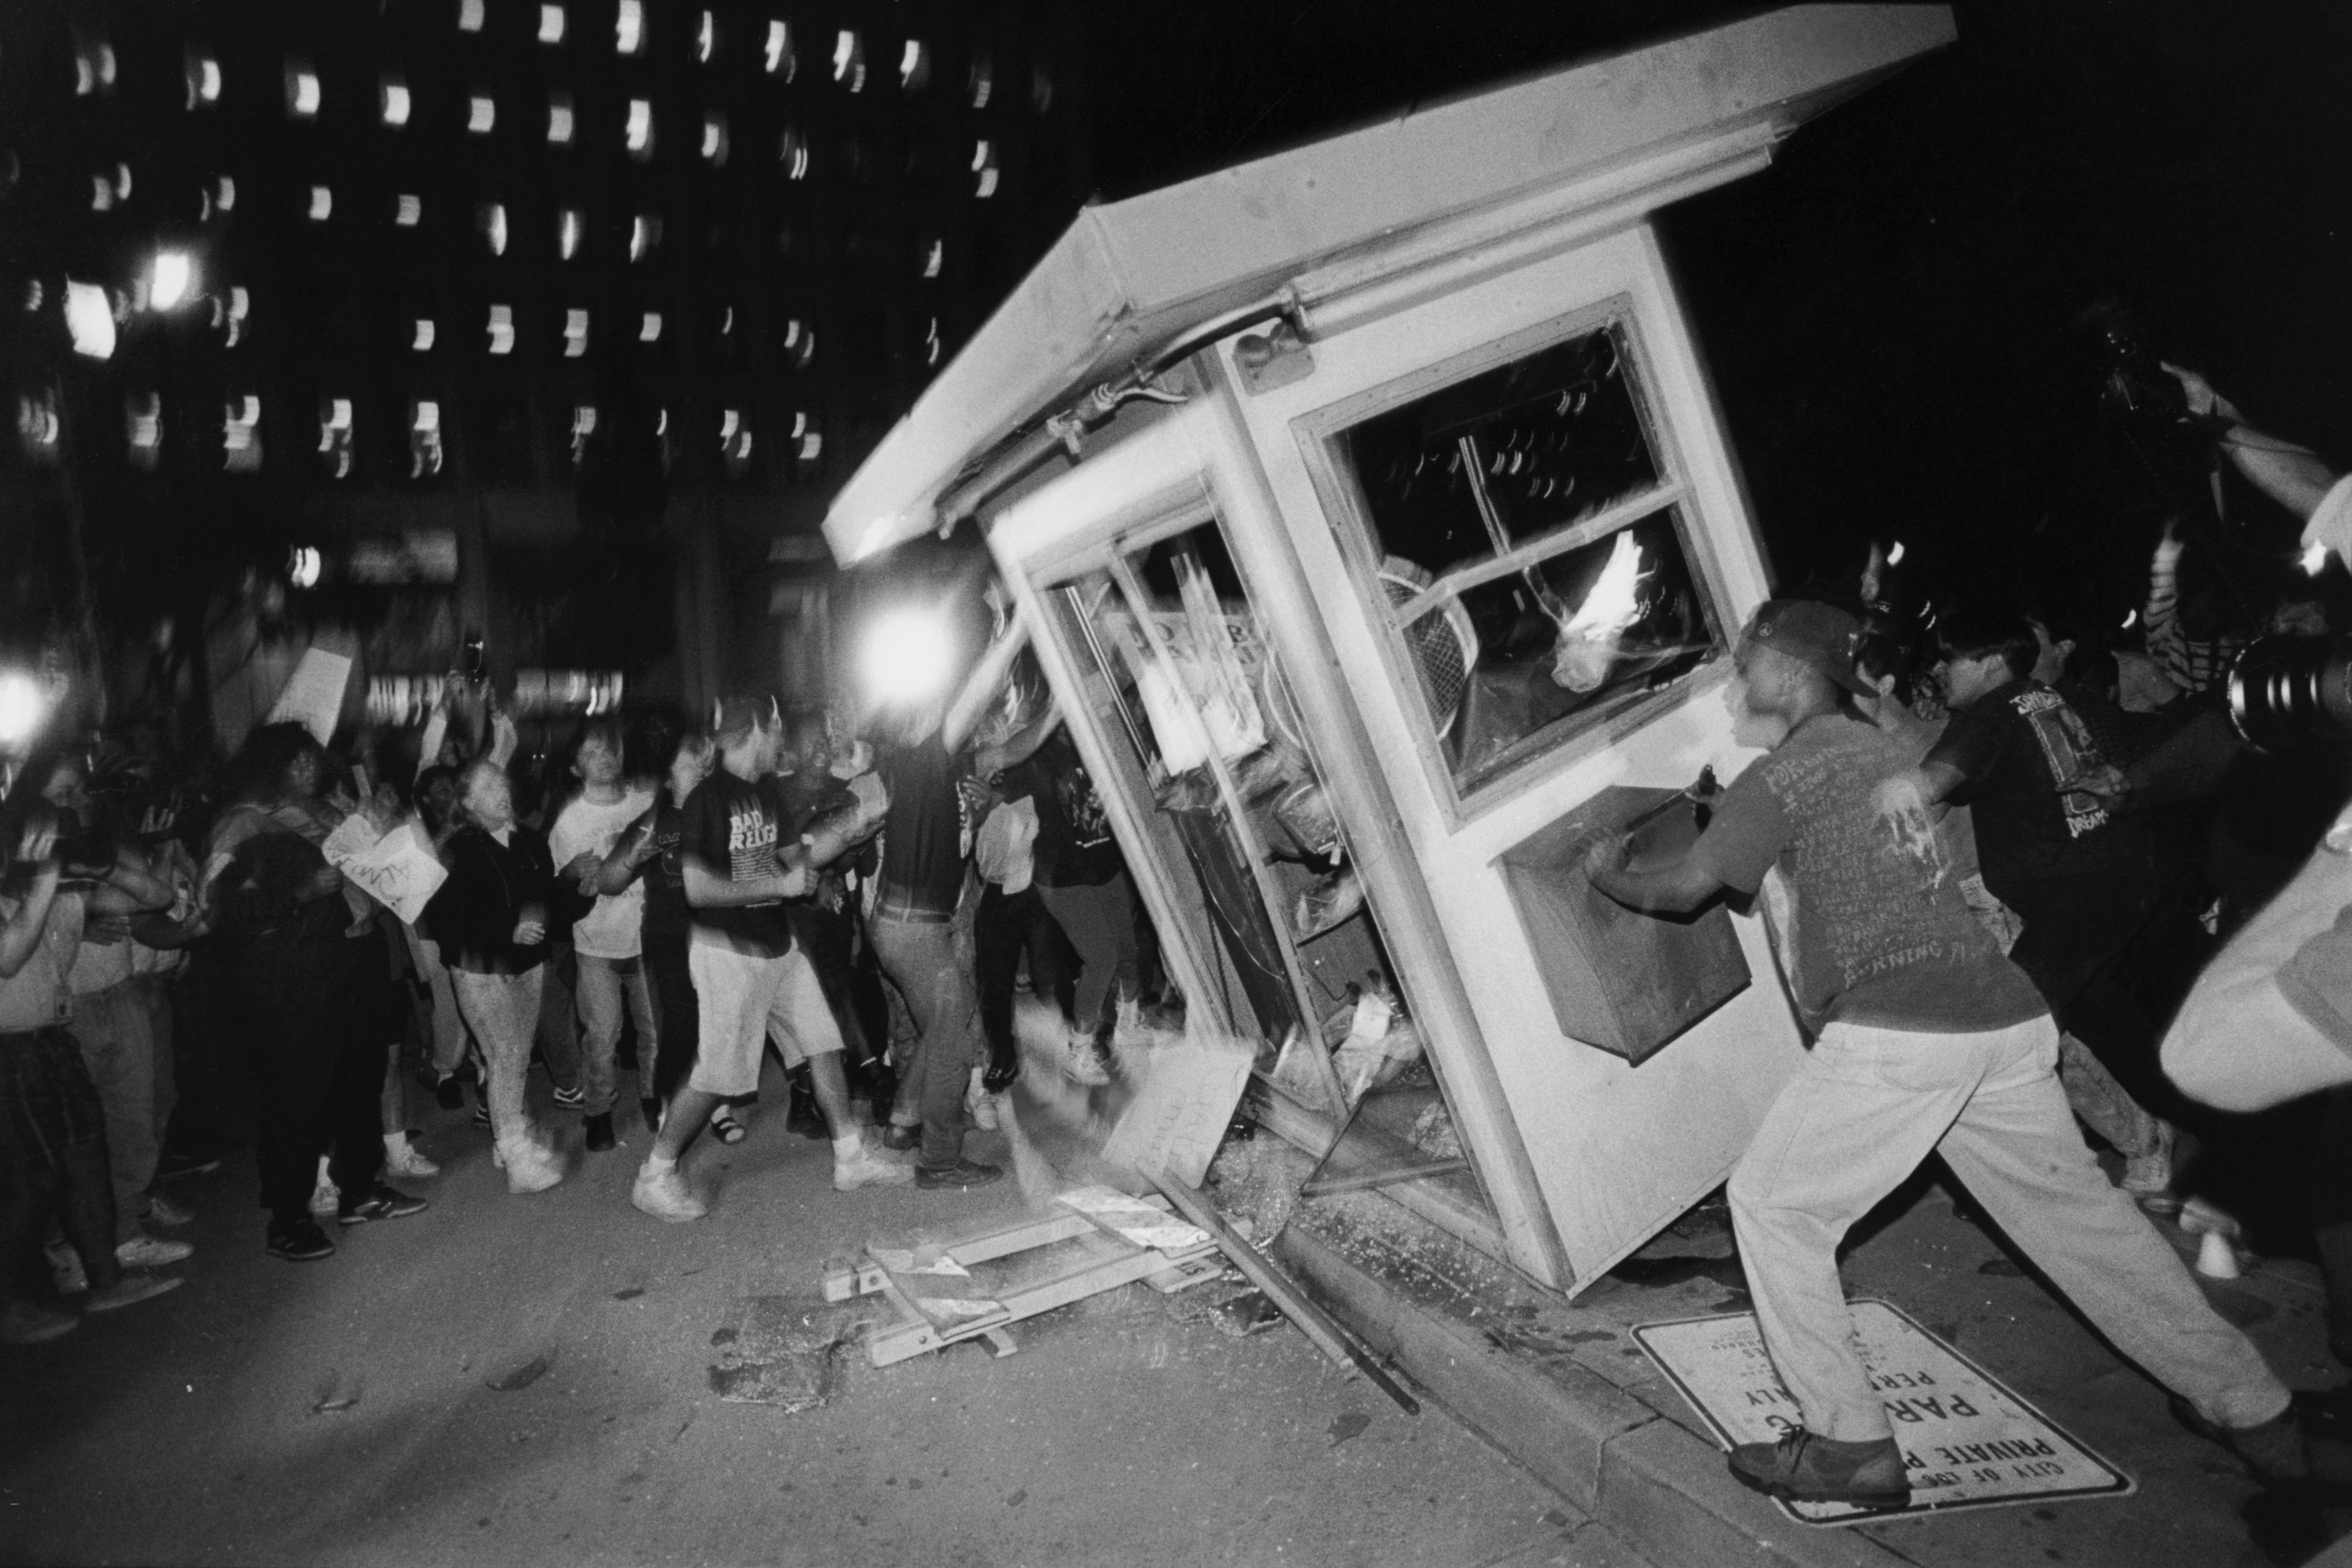 1992 los angeles race riots essay - the 1992 los angeles riots april 26th, 1992, there was a riot on the streets, tell me where were you you were sittin' home watchin' your tv, while i was paticipatin' in some anarchy first spot we hit it was my liquor store.